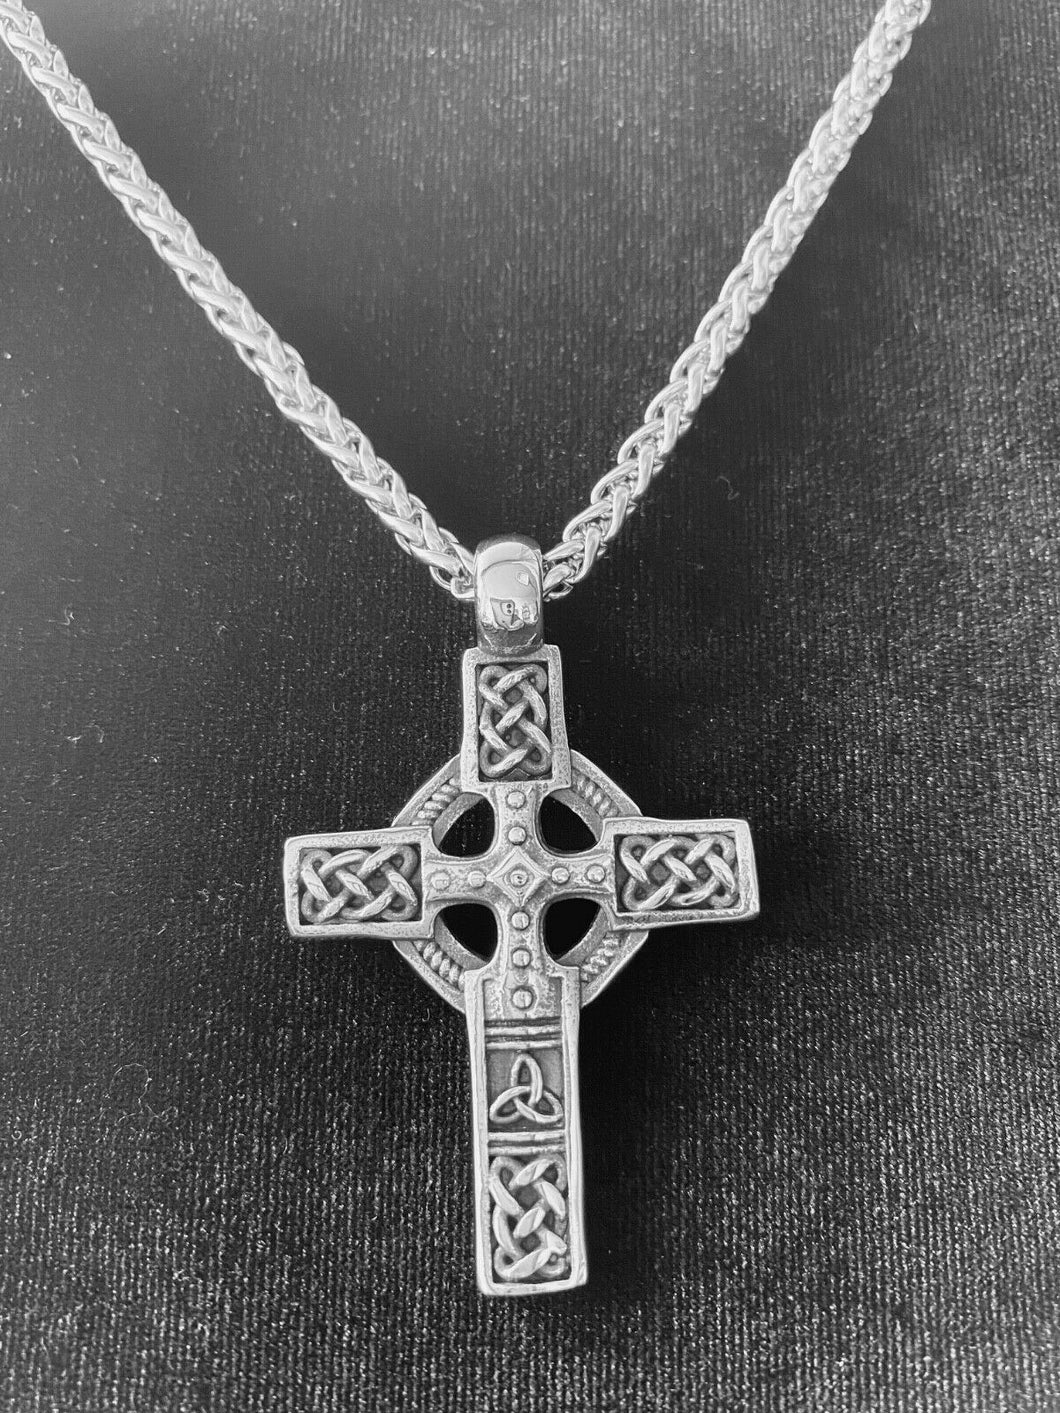 Large 316L Stainless Steel Irish Celtic Cross Pendant FREE Chain